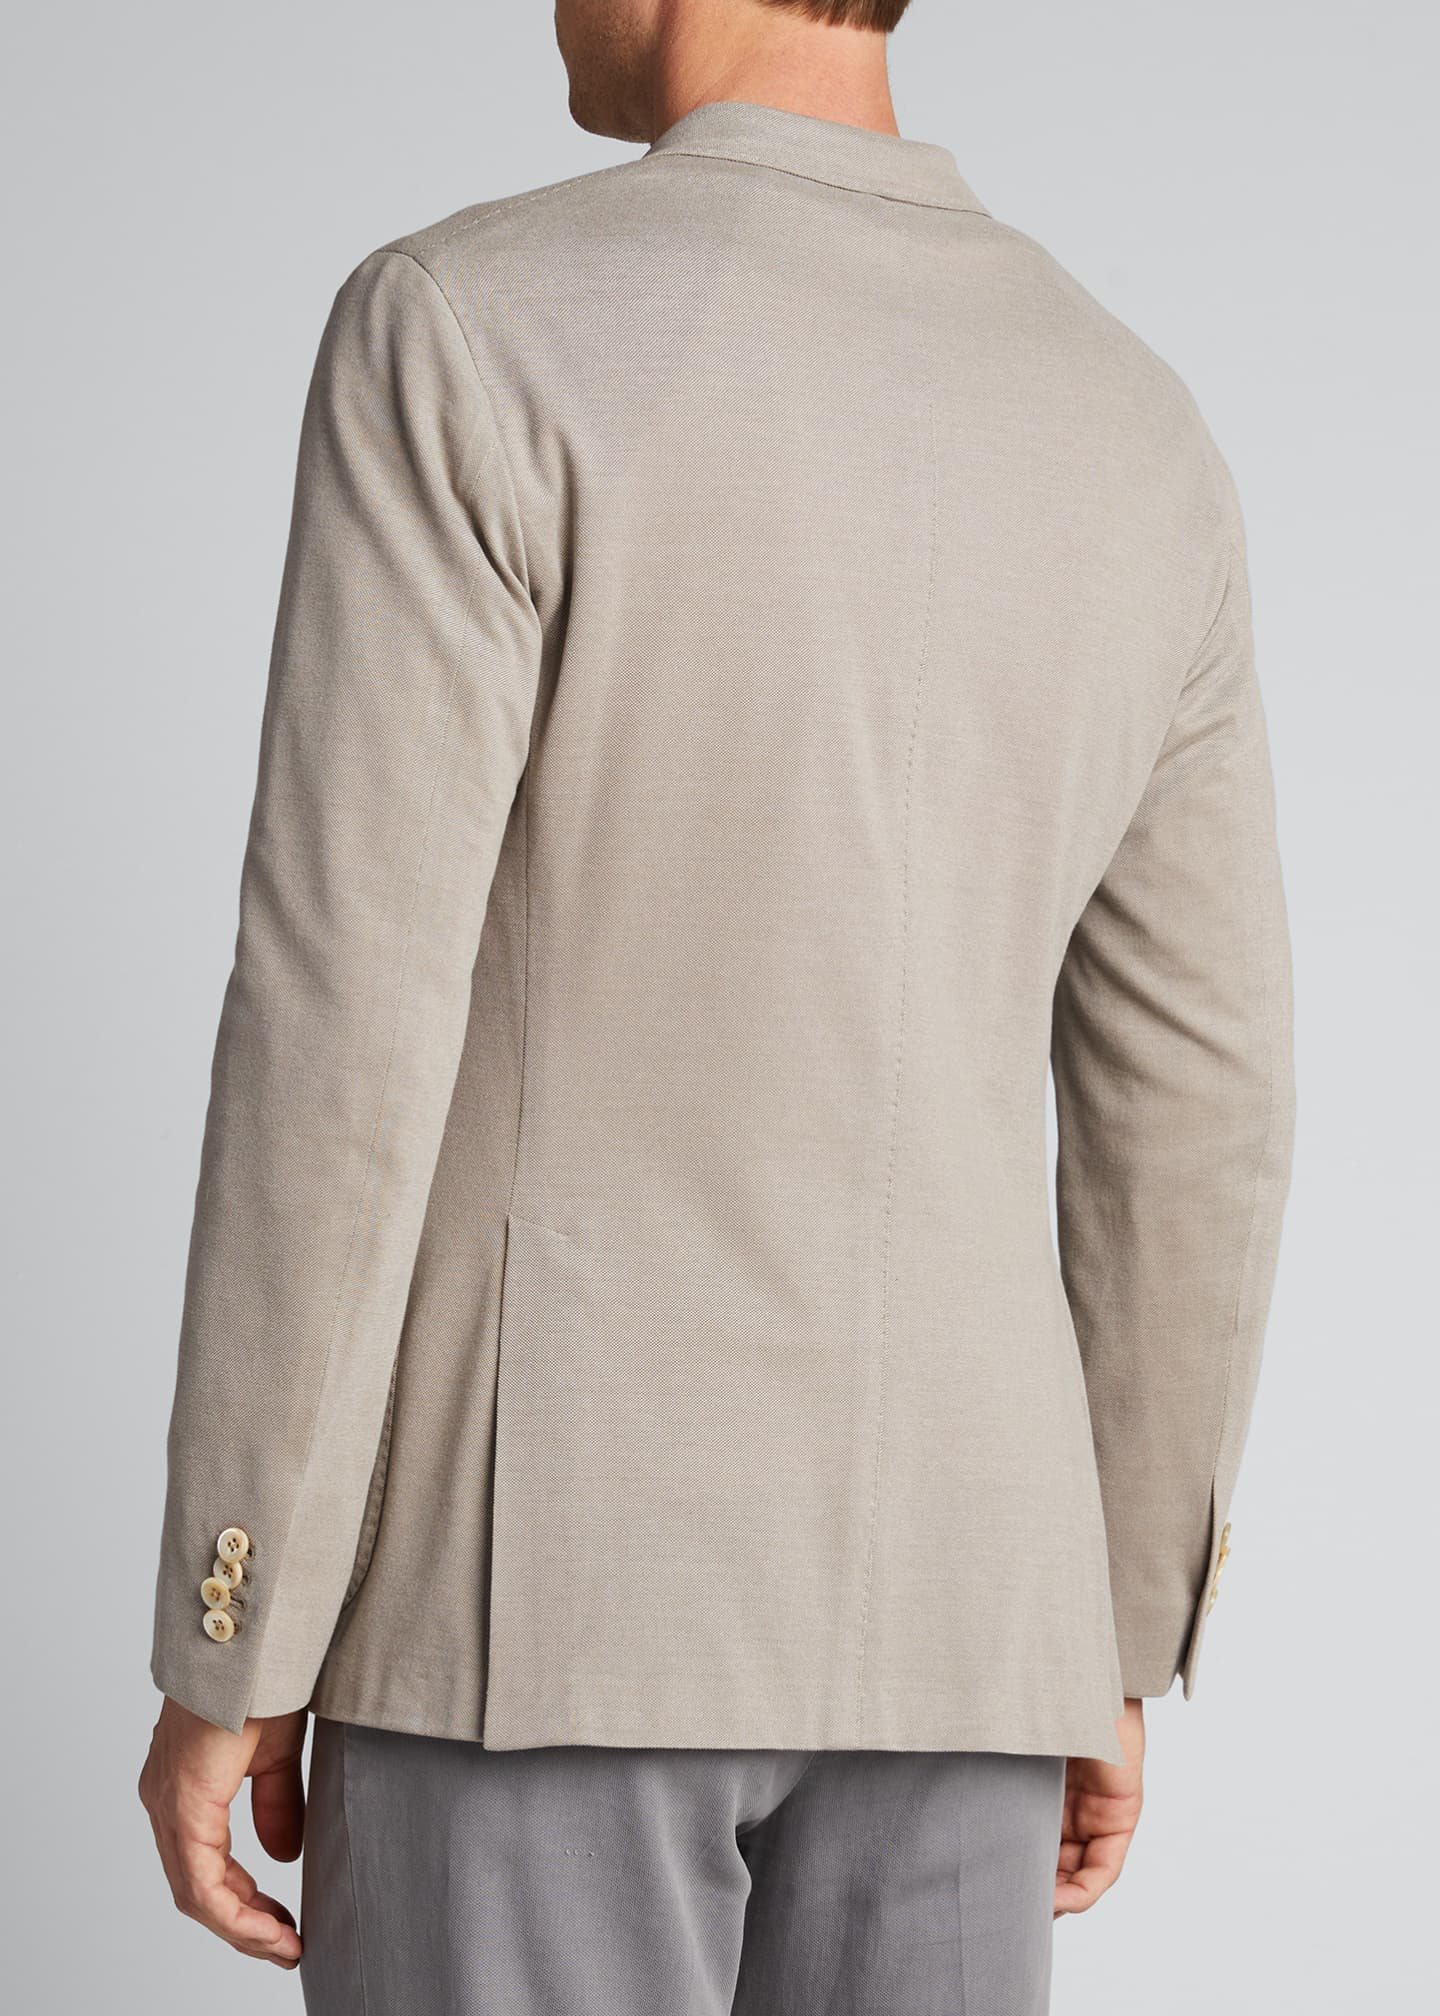 Image 2 of 5: Men's Solid Pique Knit Blazer